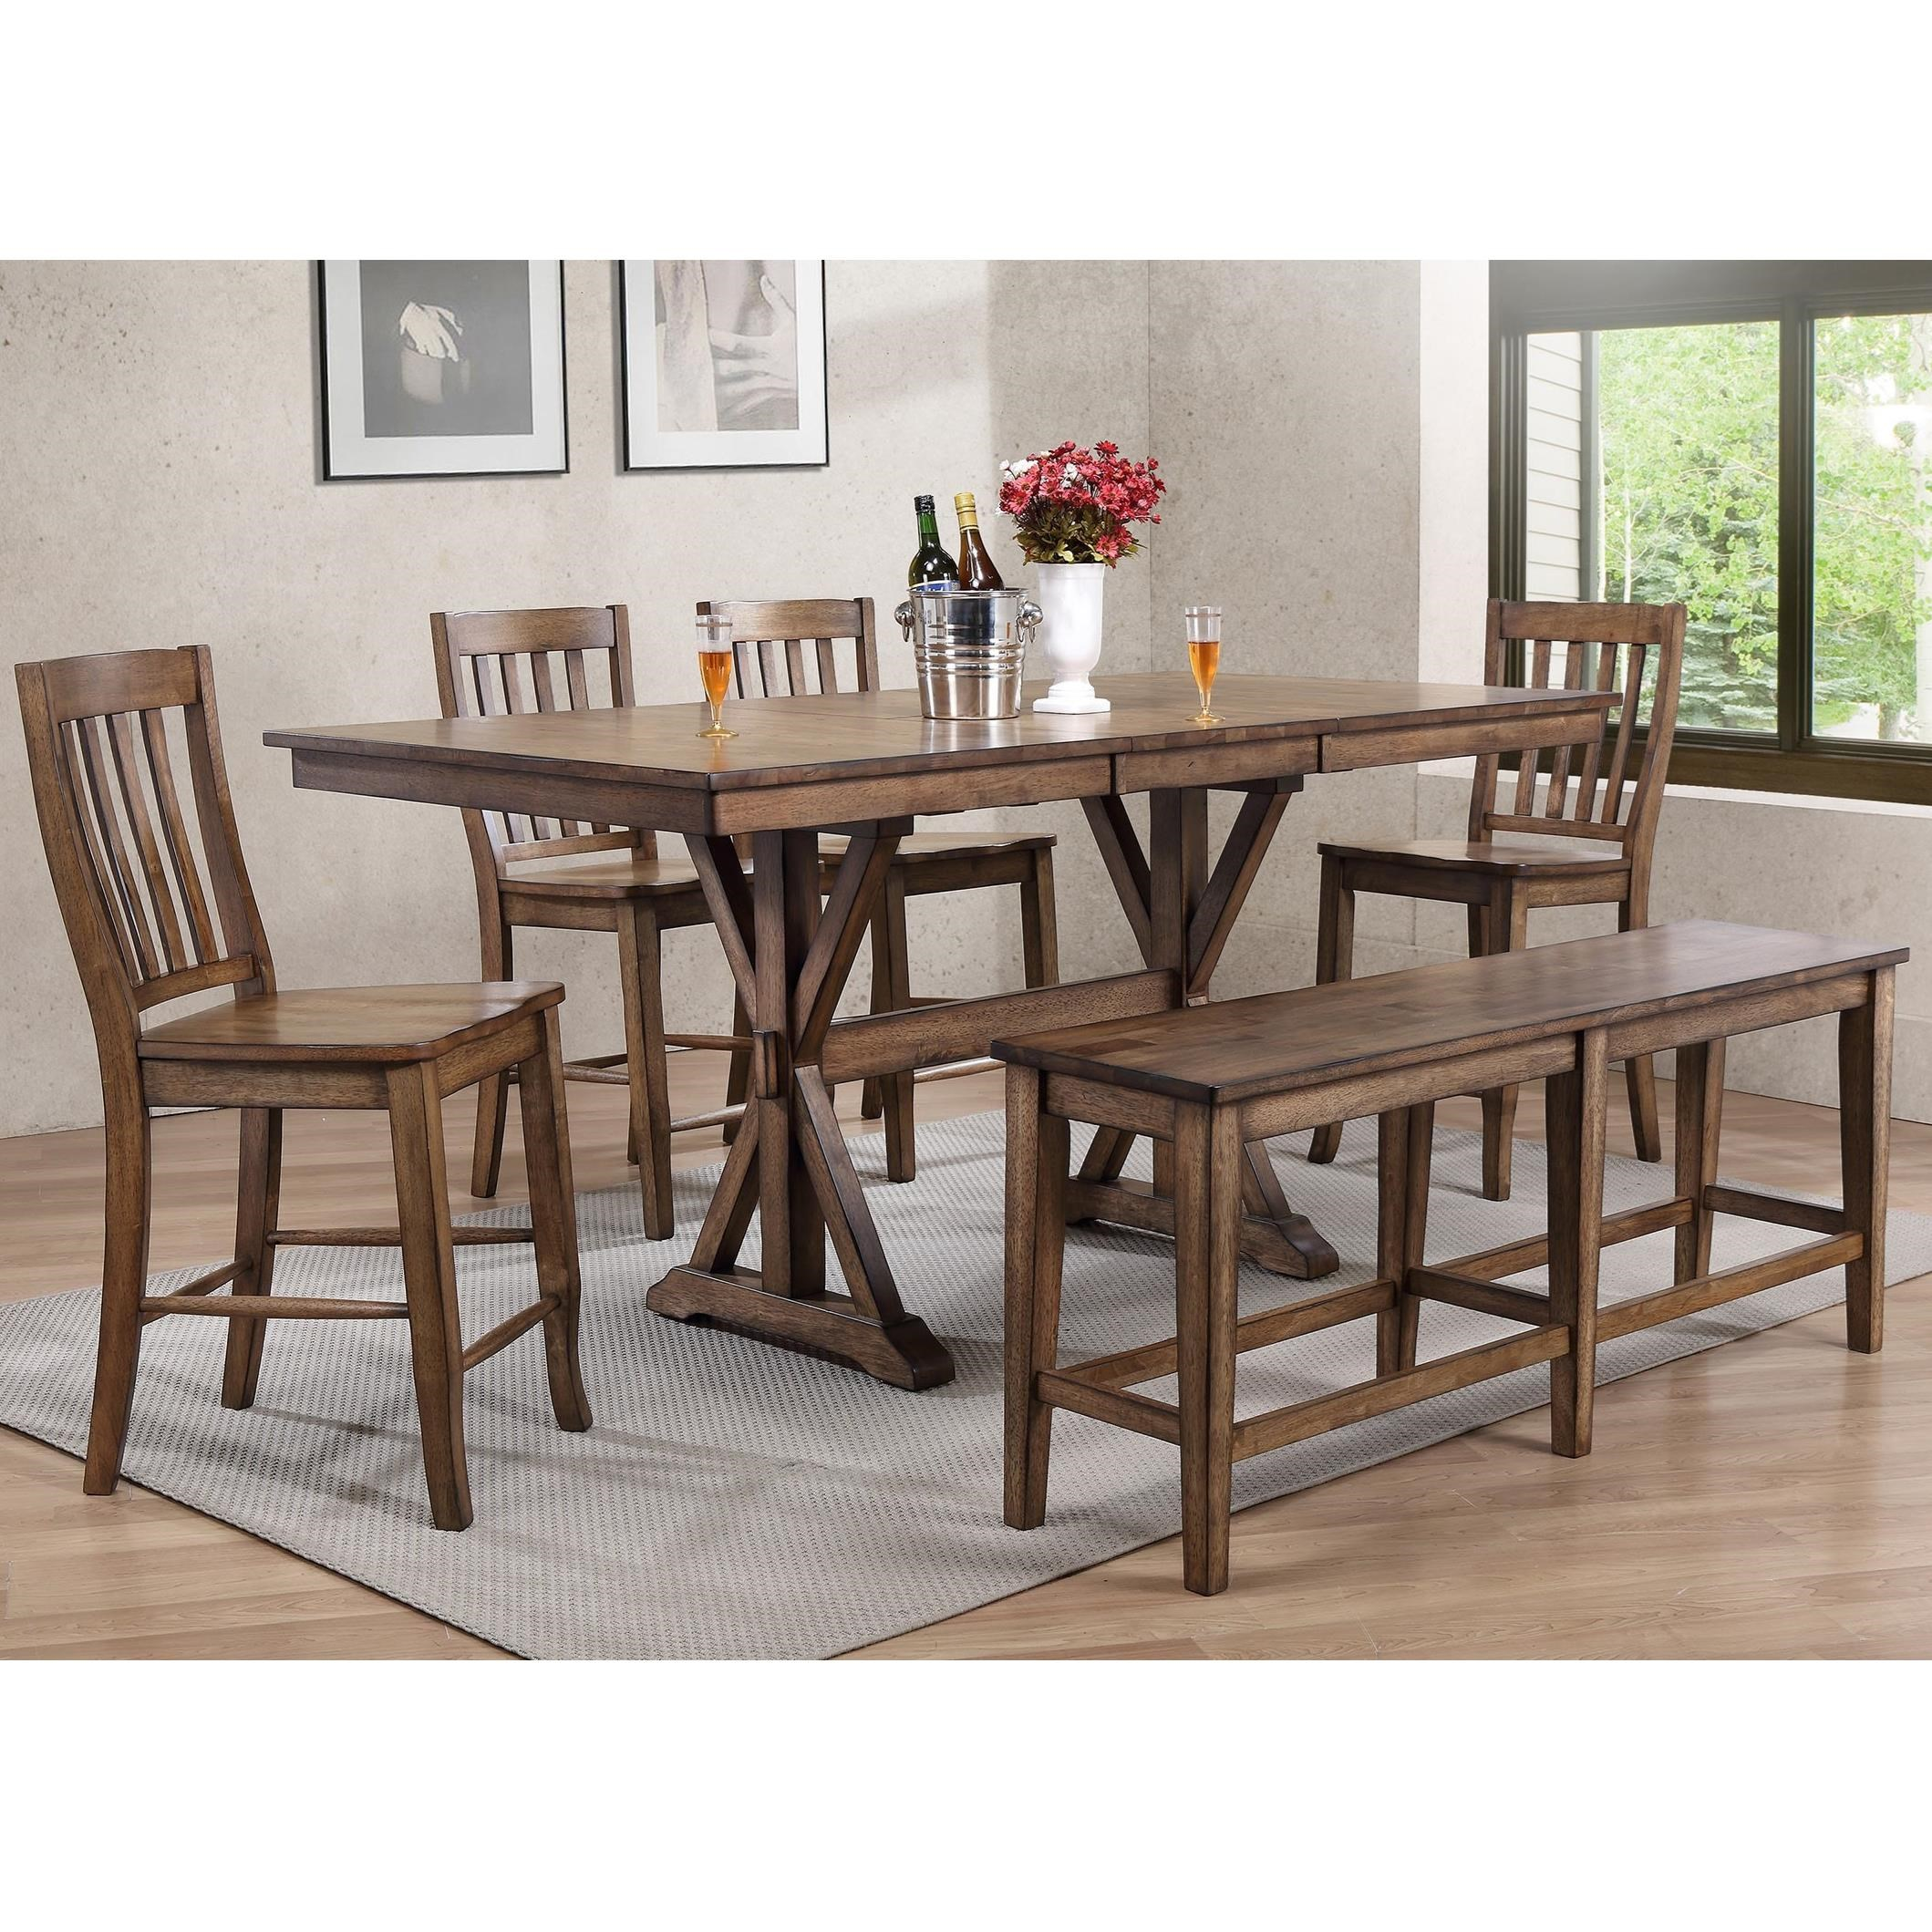 6 Chair Dining Set: Winners Only Carmel 6 Piece Dining Set With Bench